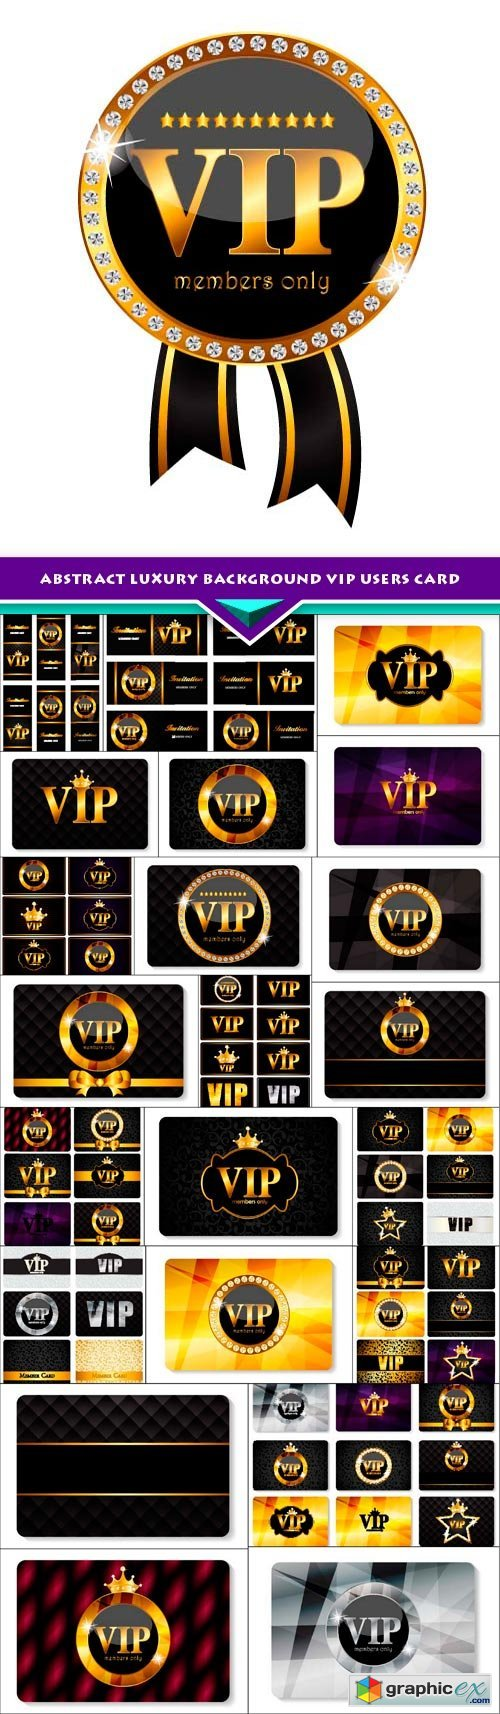 Abstract Luxury background VIP users card 23x EPS